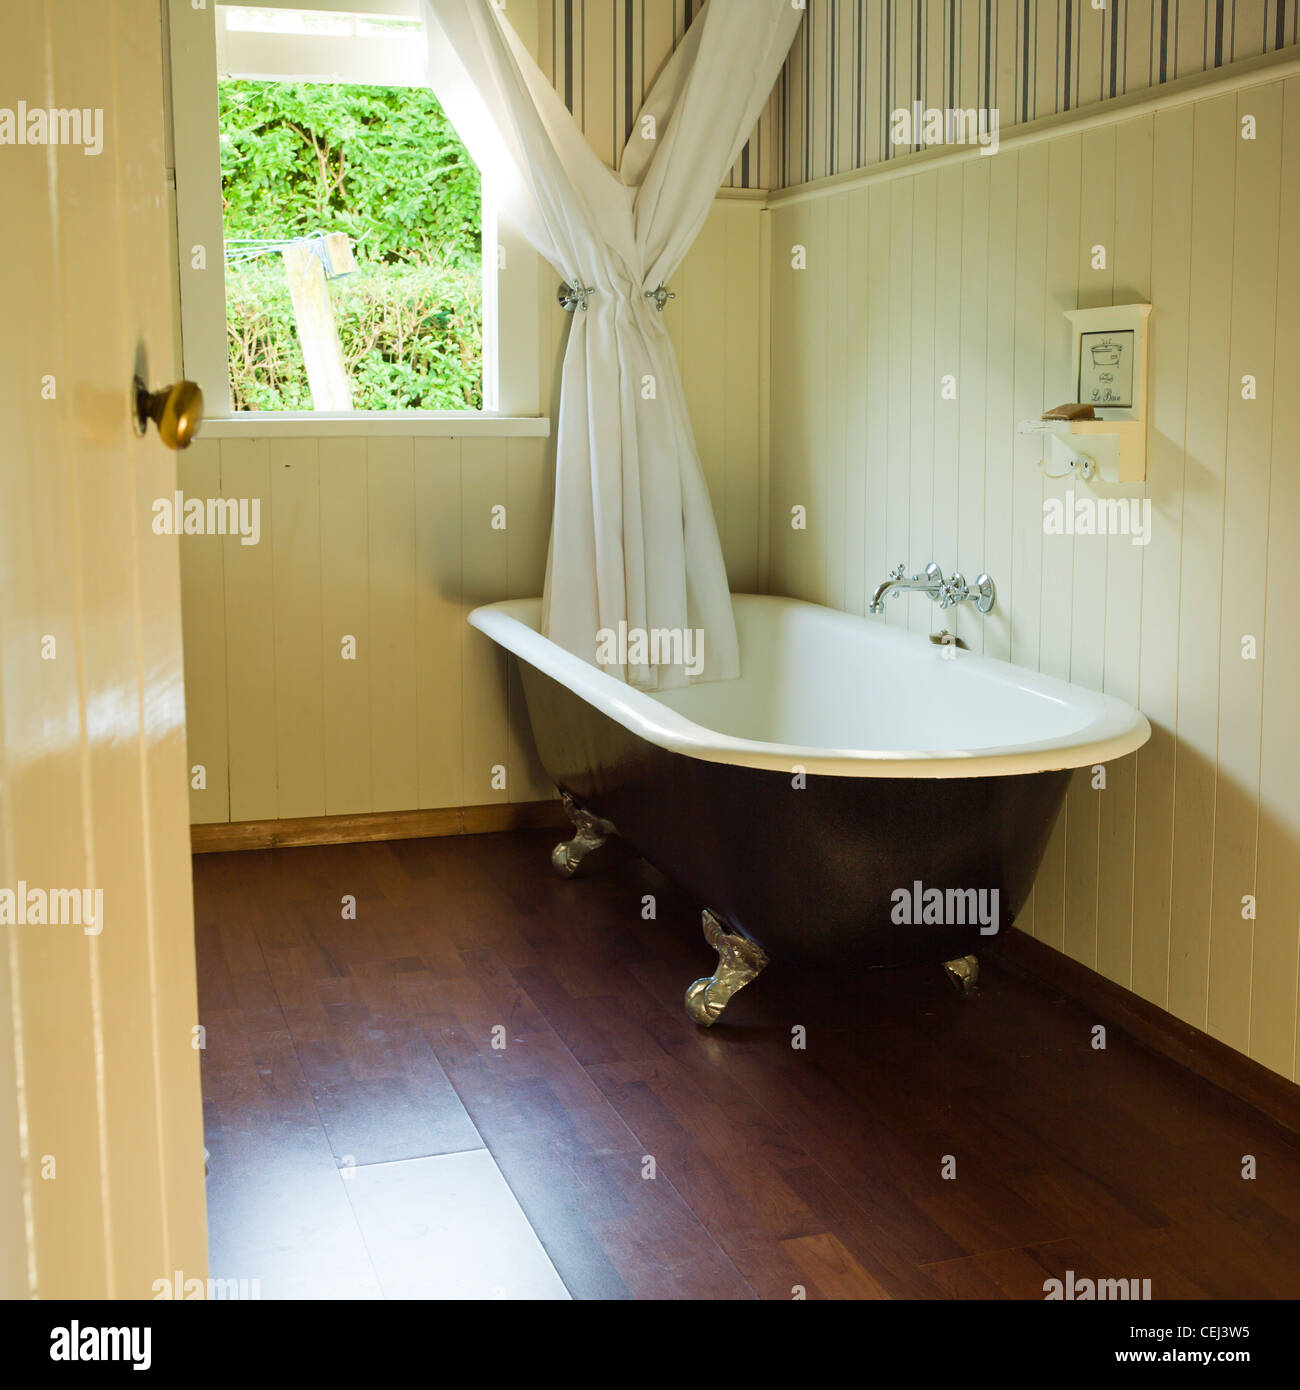 Ball And Claw Bath Stock Photos & Ball And Claw Bath Stock Images ...